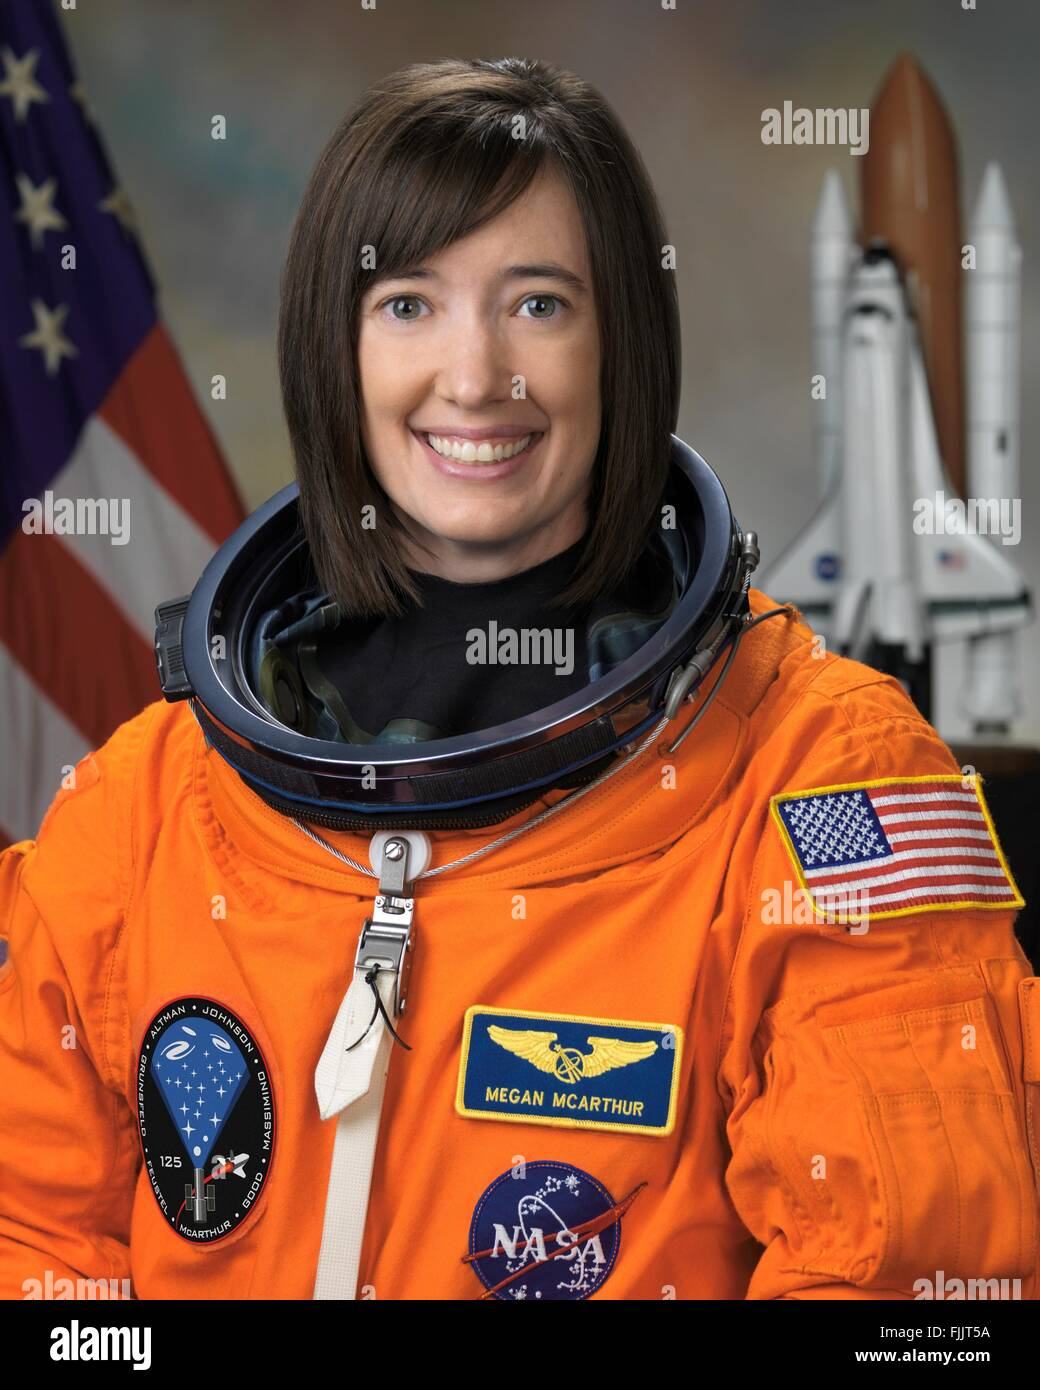 NASA astronaut and shuttle mission STS-125 crew Megan McArthur official portrait wearing the orange space shuttle - Stock Image